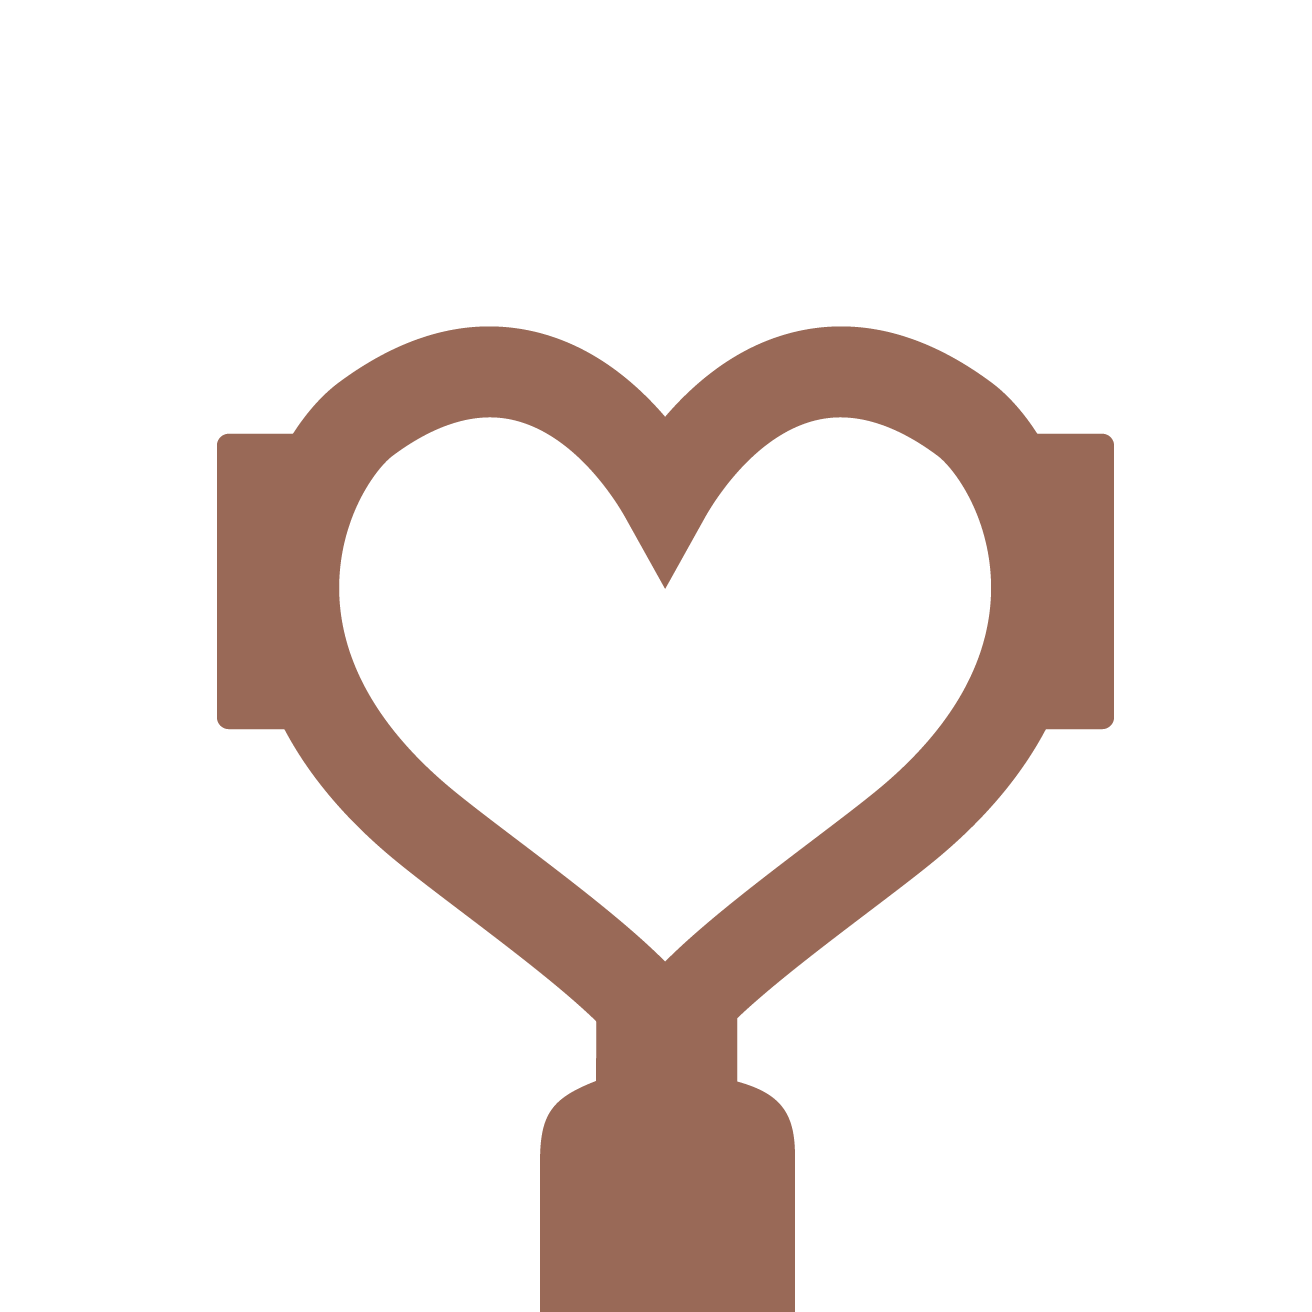 Ascaso Dream UK - Black, Exclusive to BellaBarista